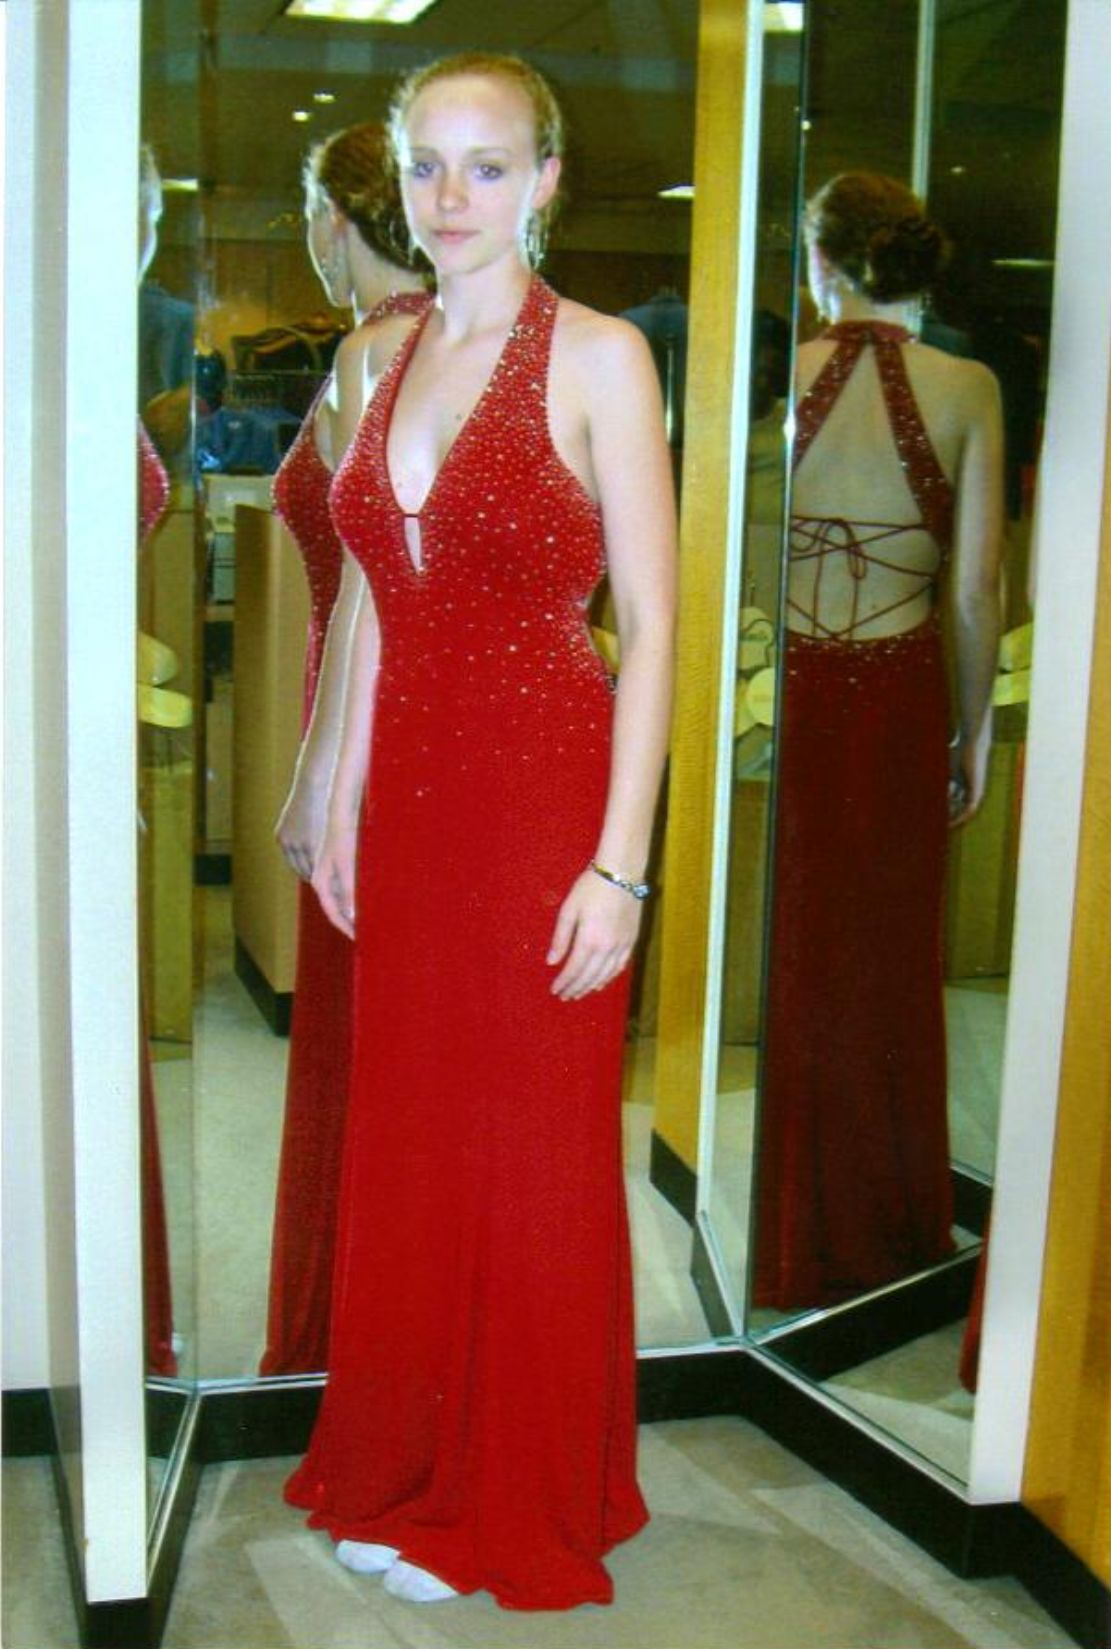 http://w4rb.com/photogallery/photo18395/Heather%27s%20Red%20Dress.jpg